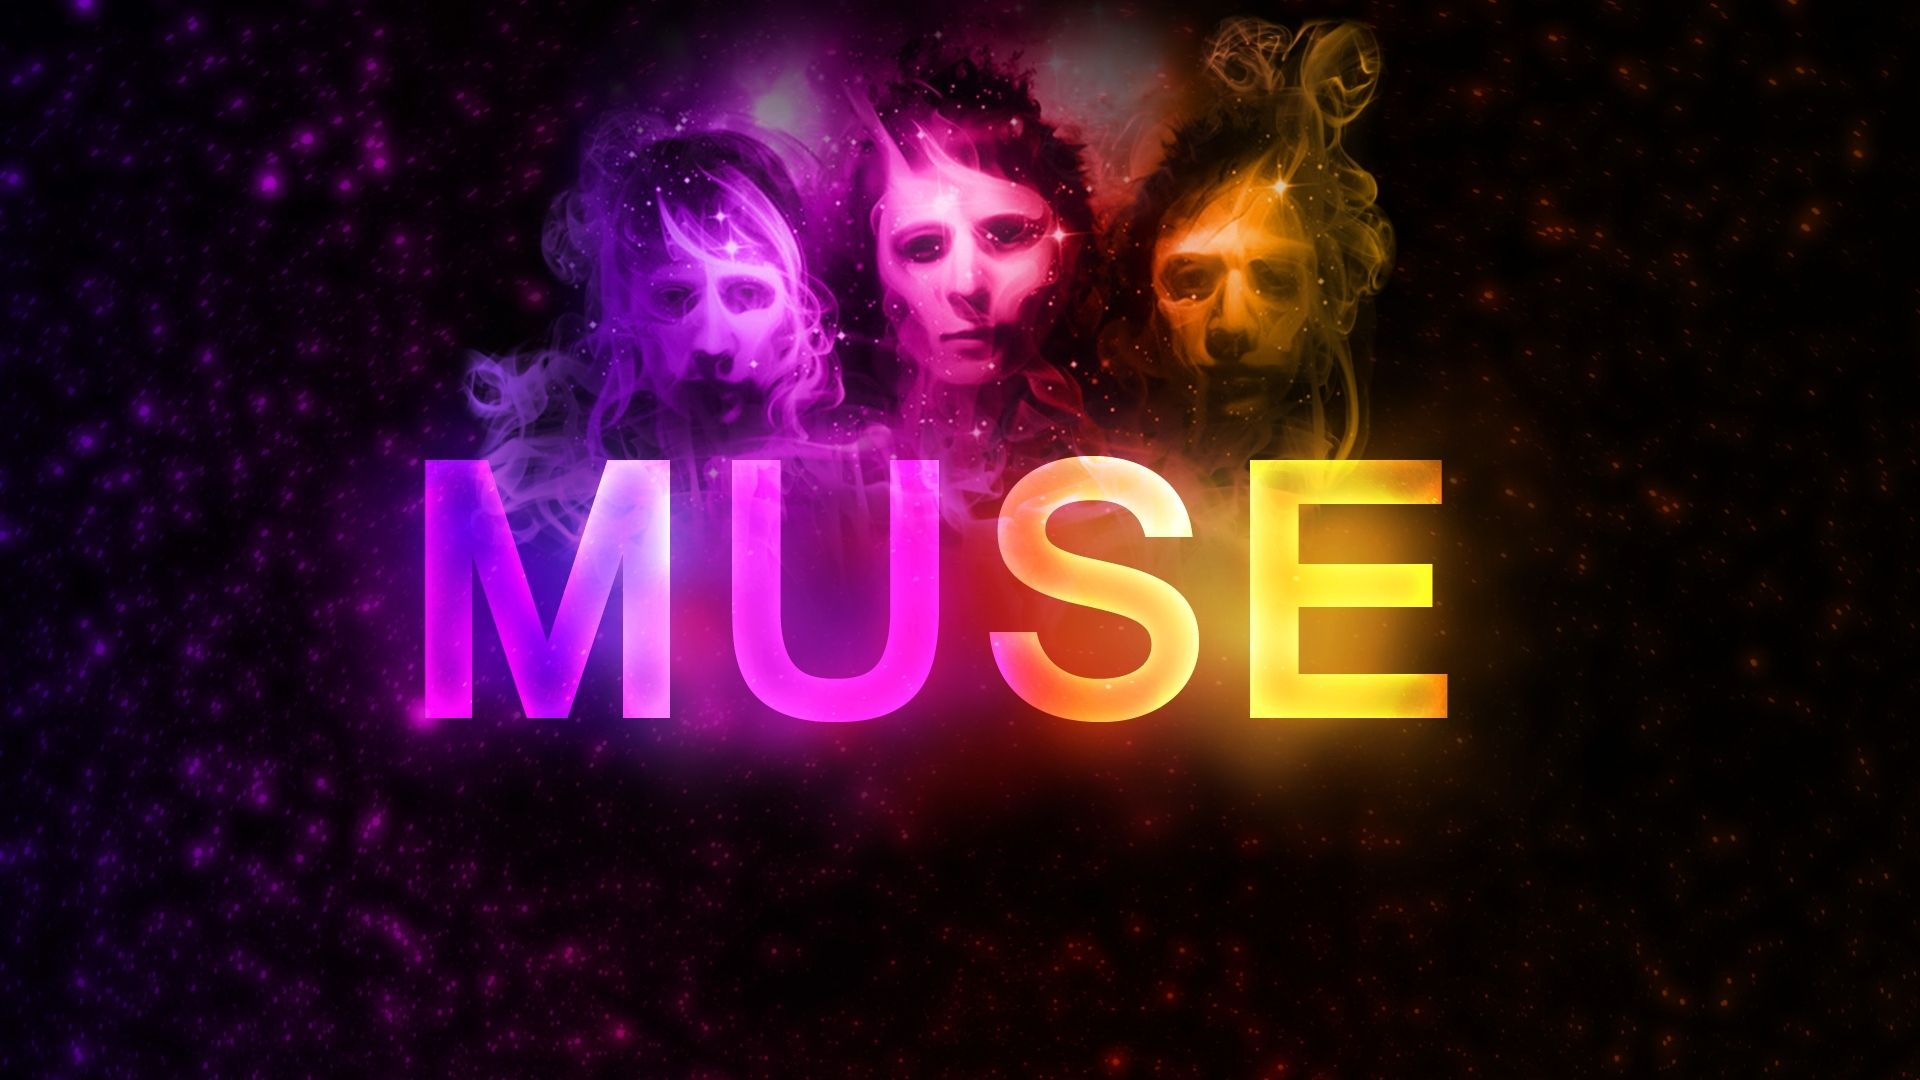 Muse wallpaper images on hd wallpapers pinterest hd muse wallpaper images on musehd wallpaper voltagebd Gallery